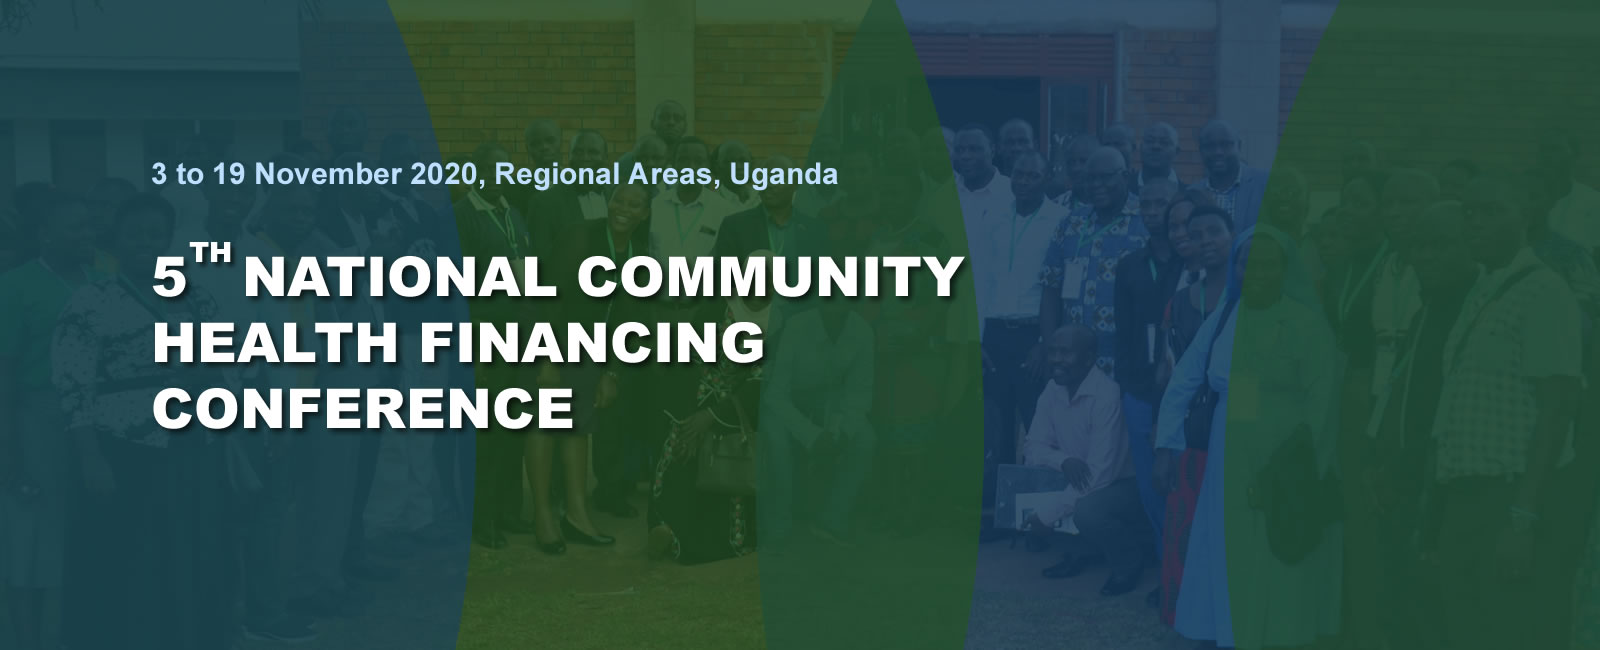 5TH NATIONAL COMMUNITY HEALTH FINANCING CONFERENCE